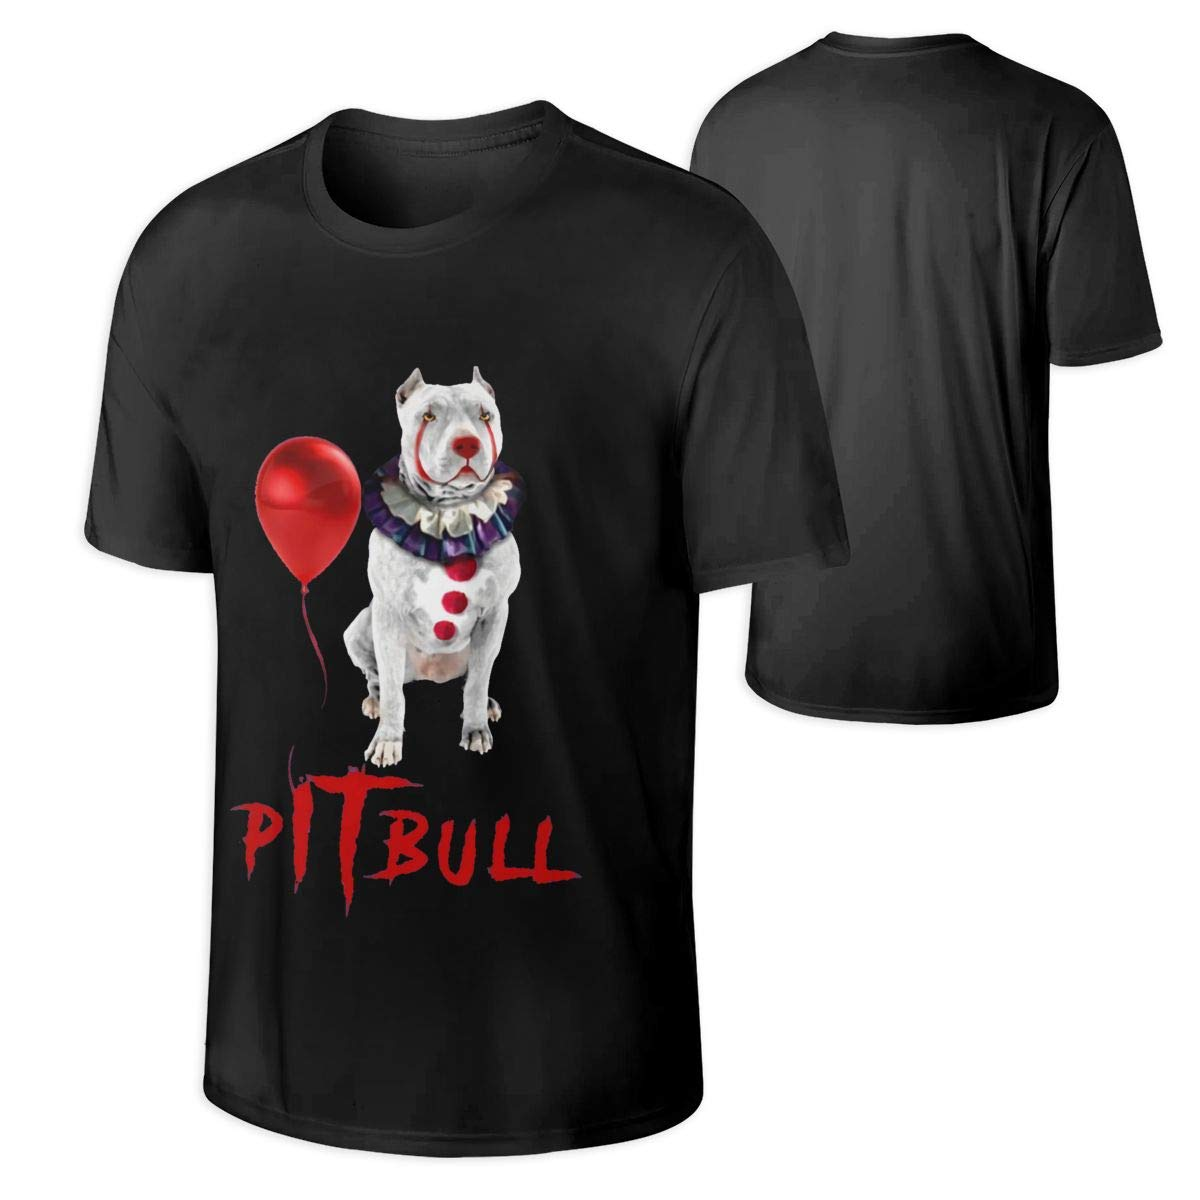 S Pitbull Pennywise Halloween Cool T Shirt Black